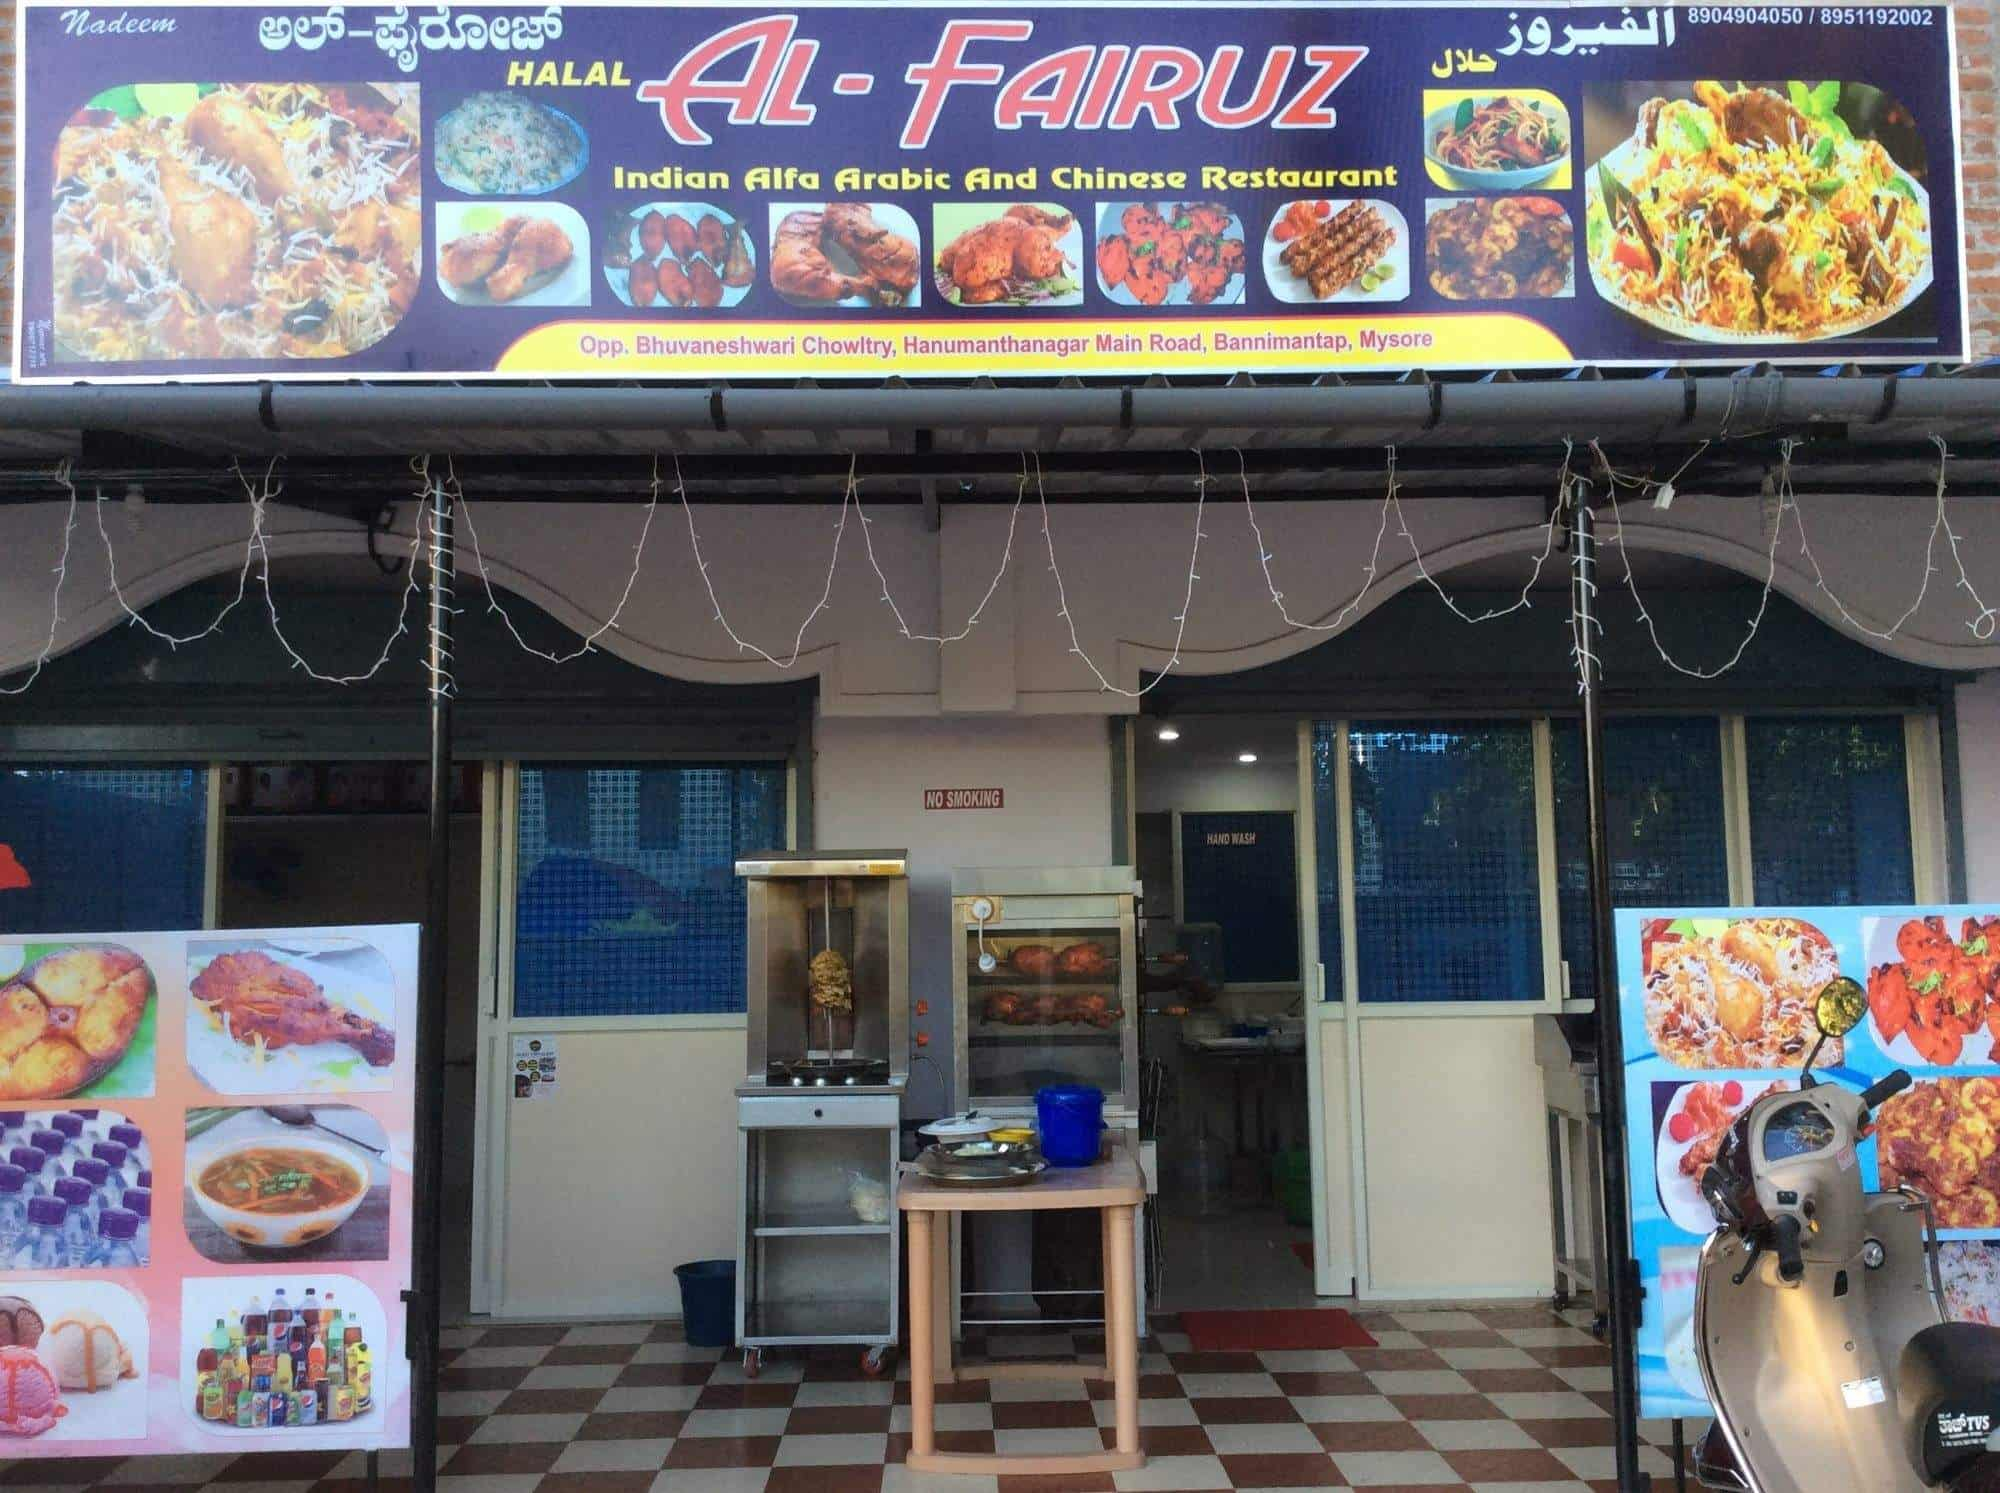 Halal chinese food near me delivery